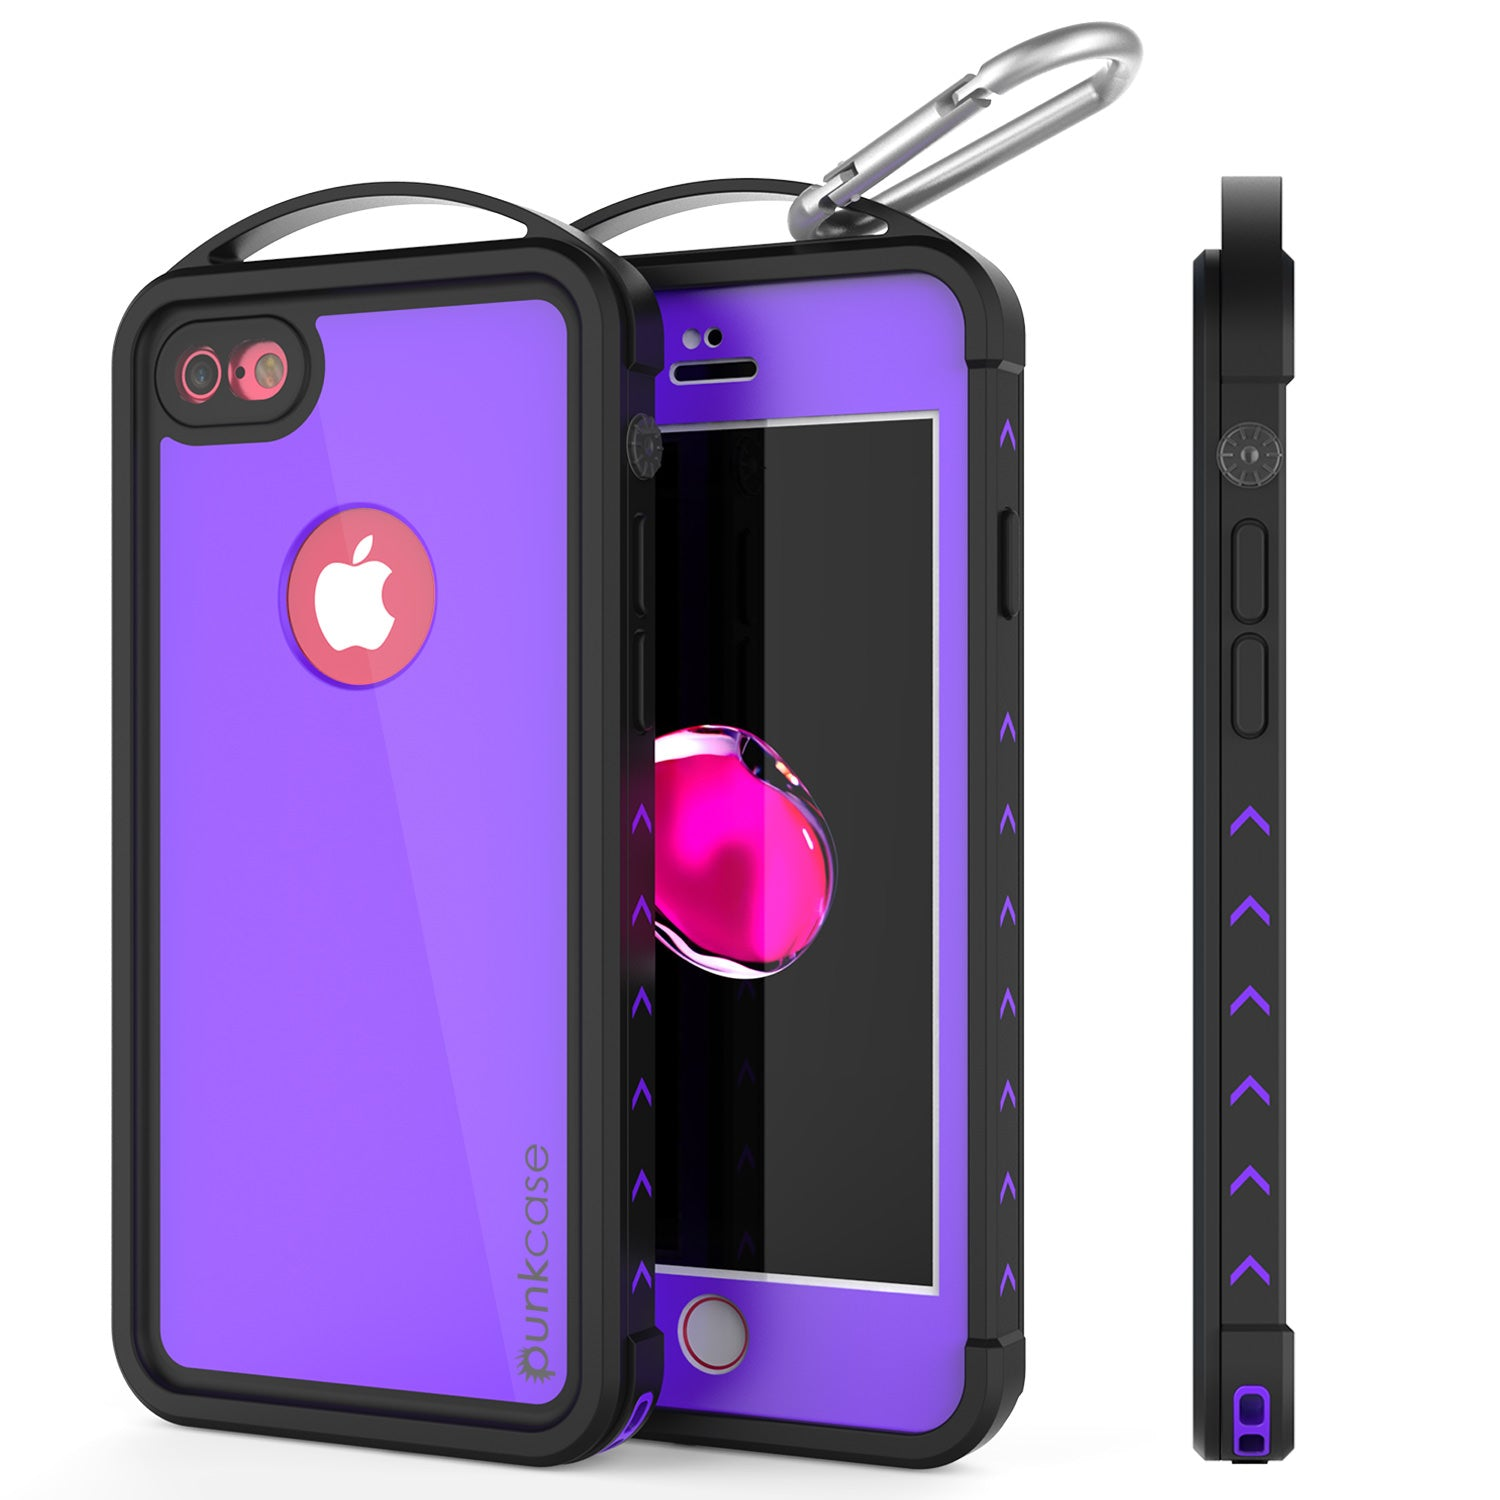 iPhone 7 Waterproof Case, Punkcase ALPINE Series, Purple | Heavy Duty Armor Cover